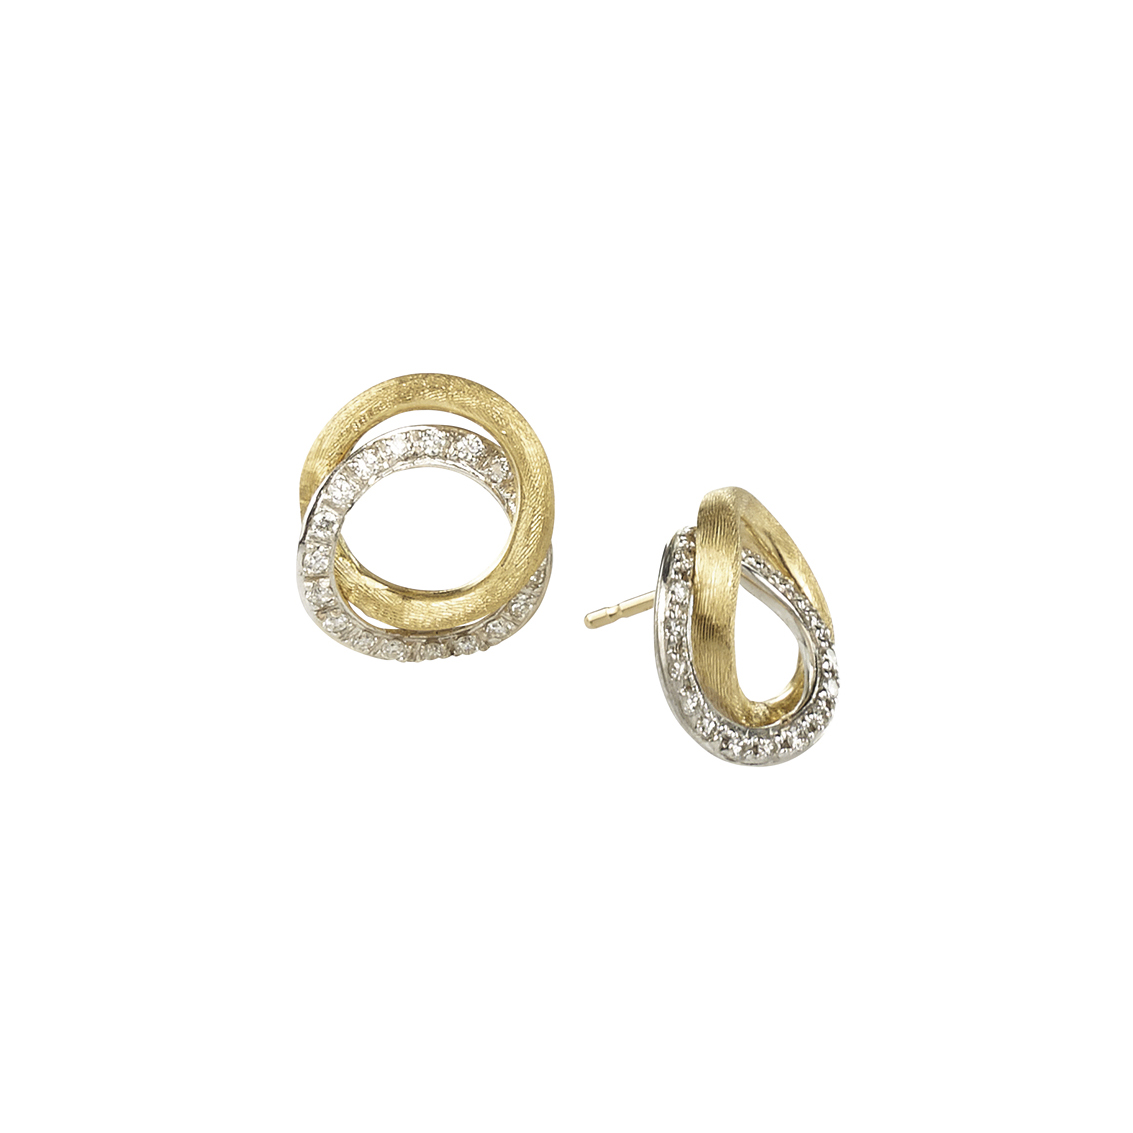 Marco Bicego Jaipur Link Earrings